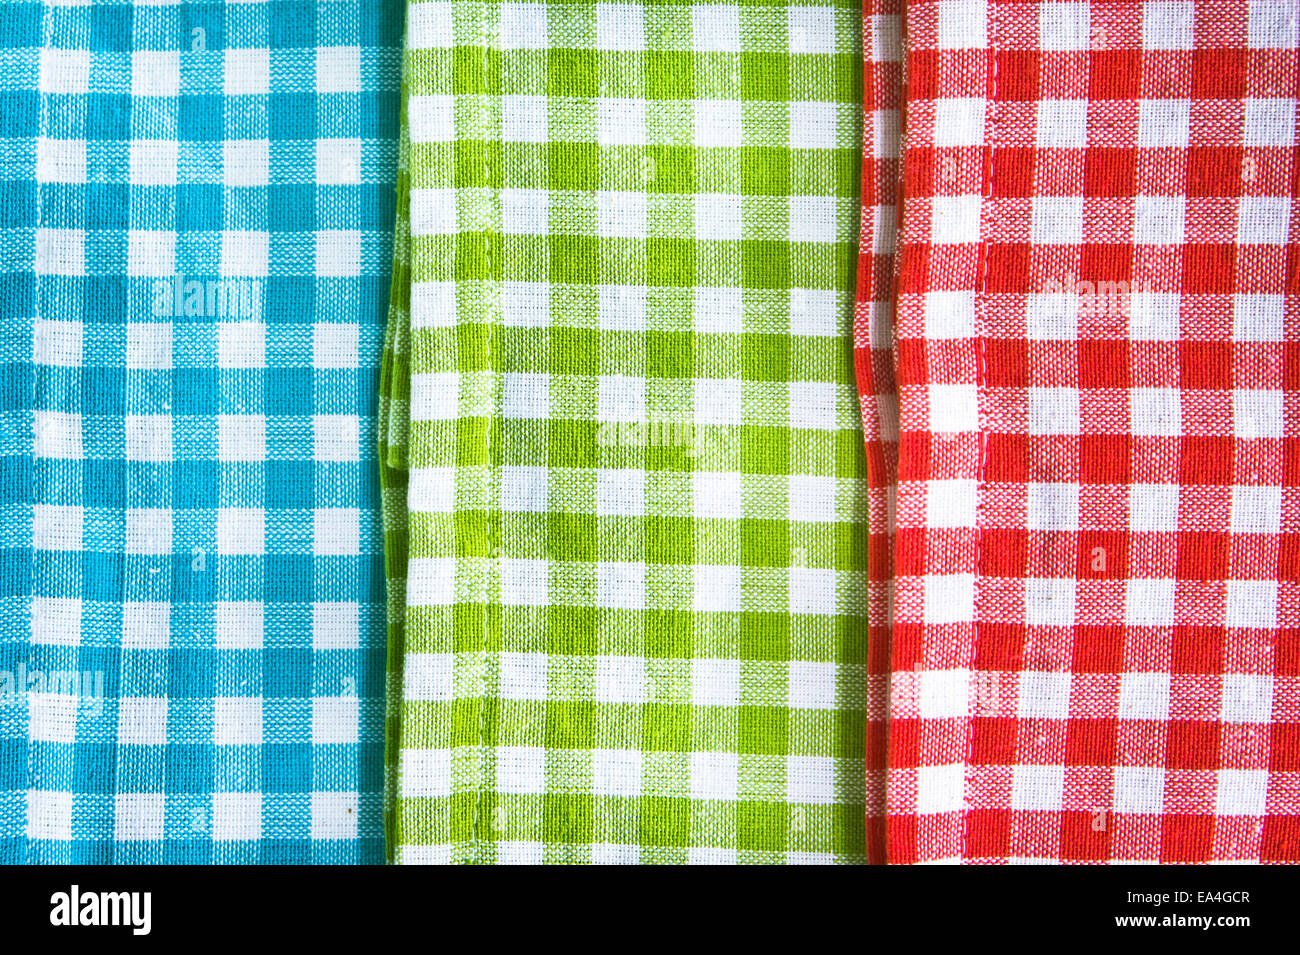 Red,green and blue gingham cloths as a background - Stock Image